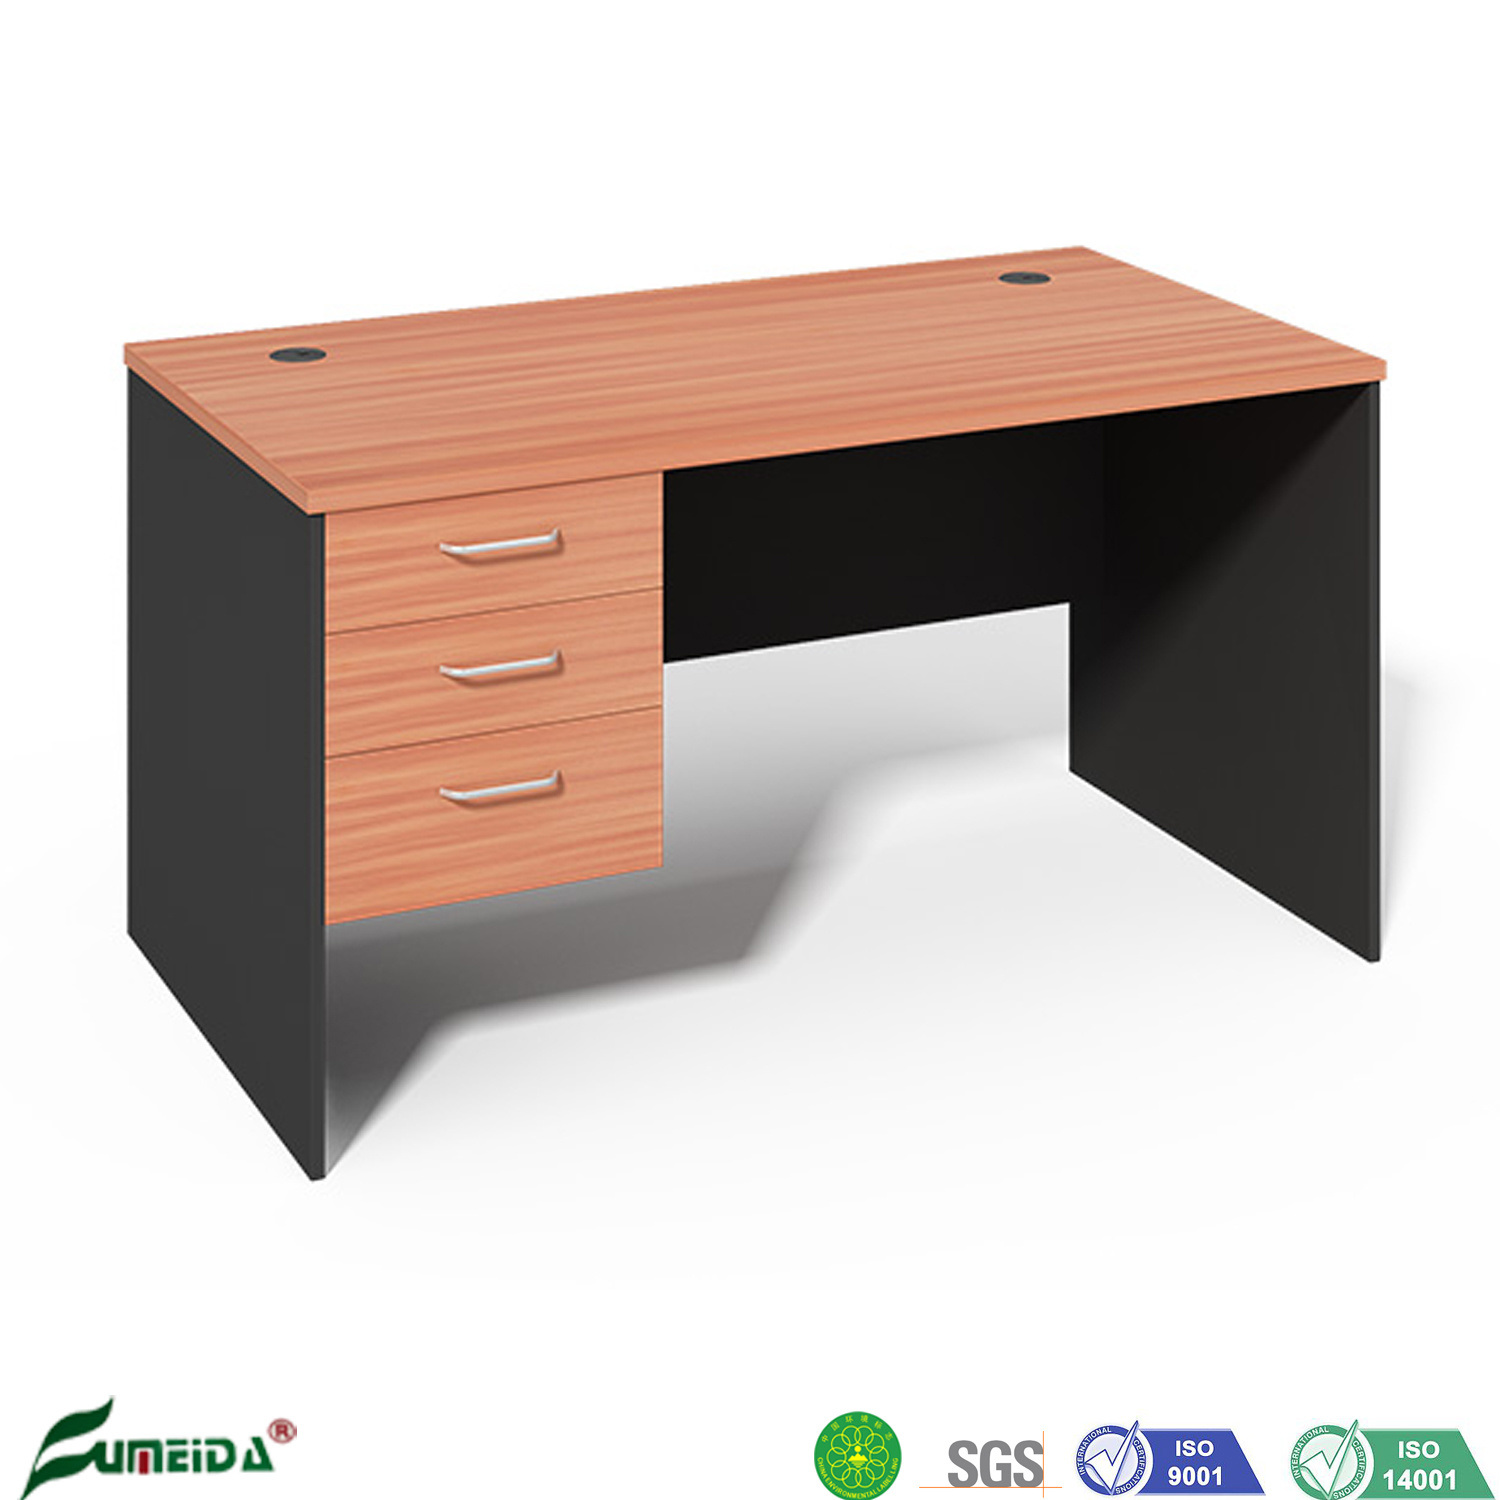 China Wholesale High Quality Mfc Wooden Small Sized Office Desk Standard Computer Desk China Office Desk Standard Desk